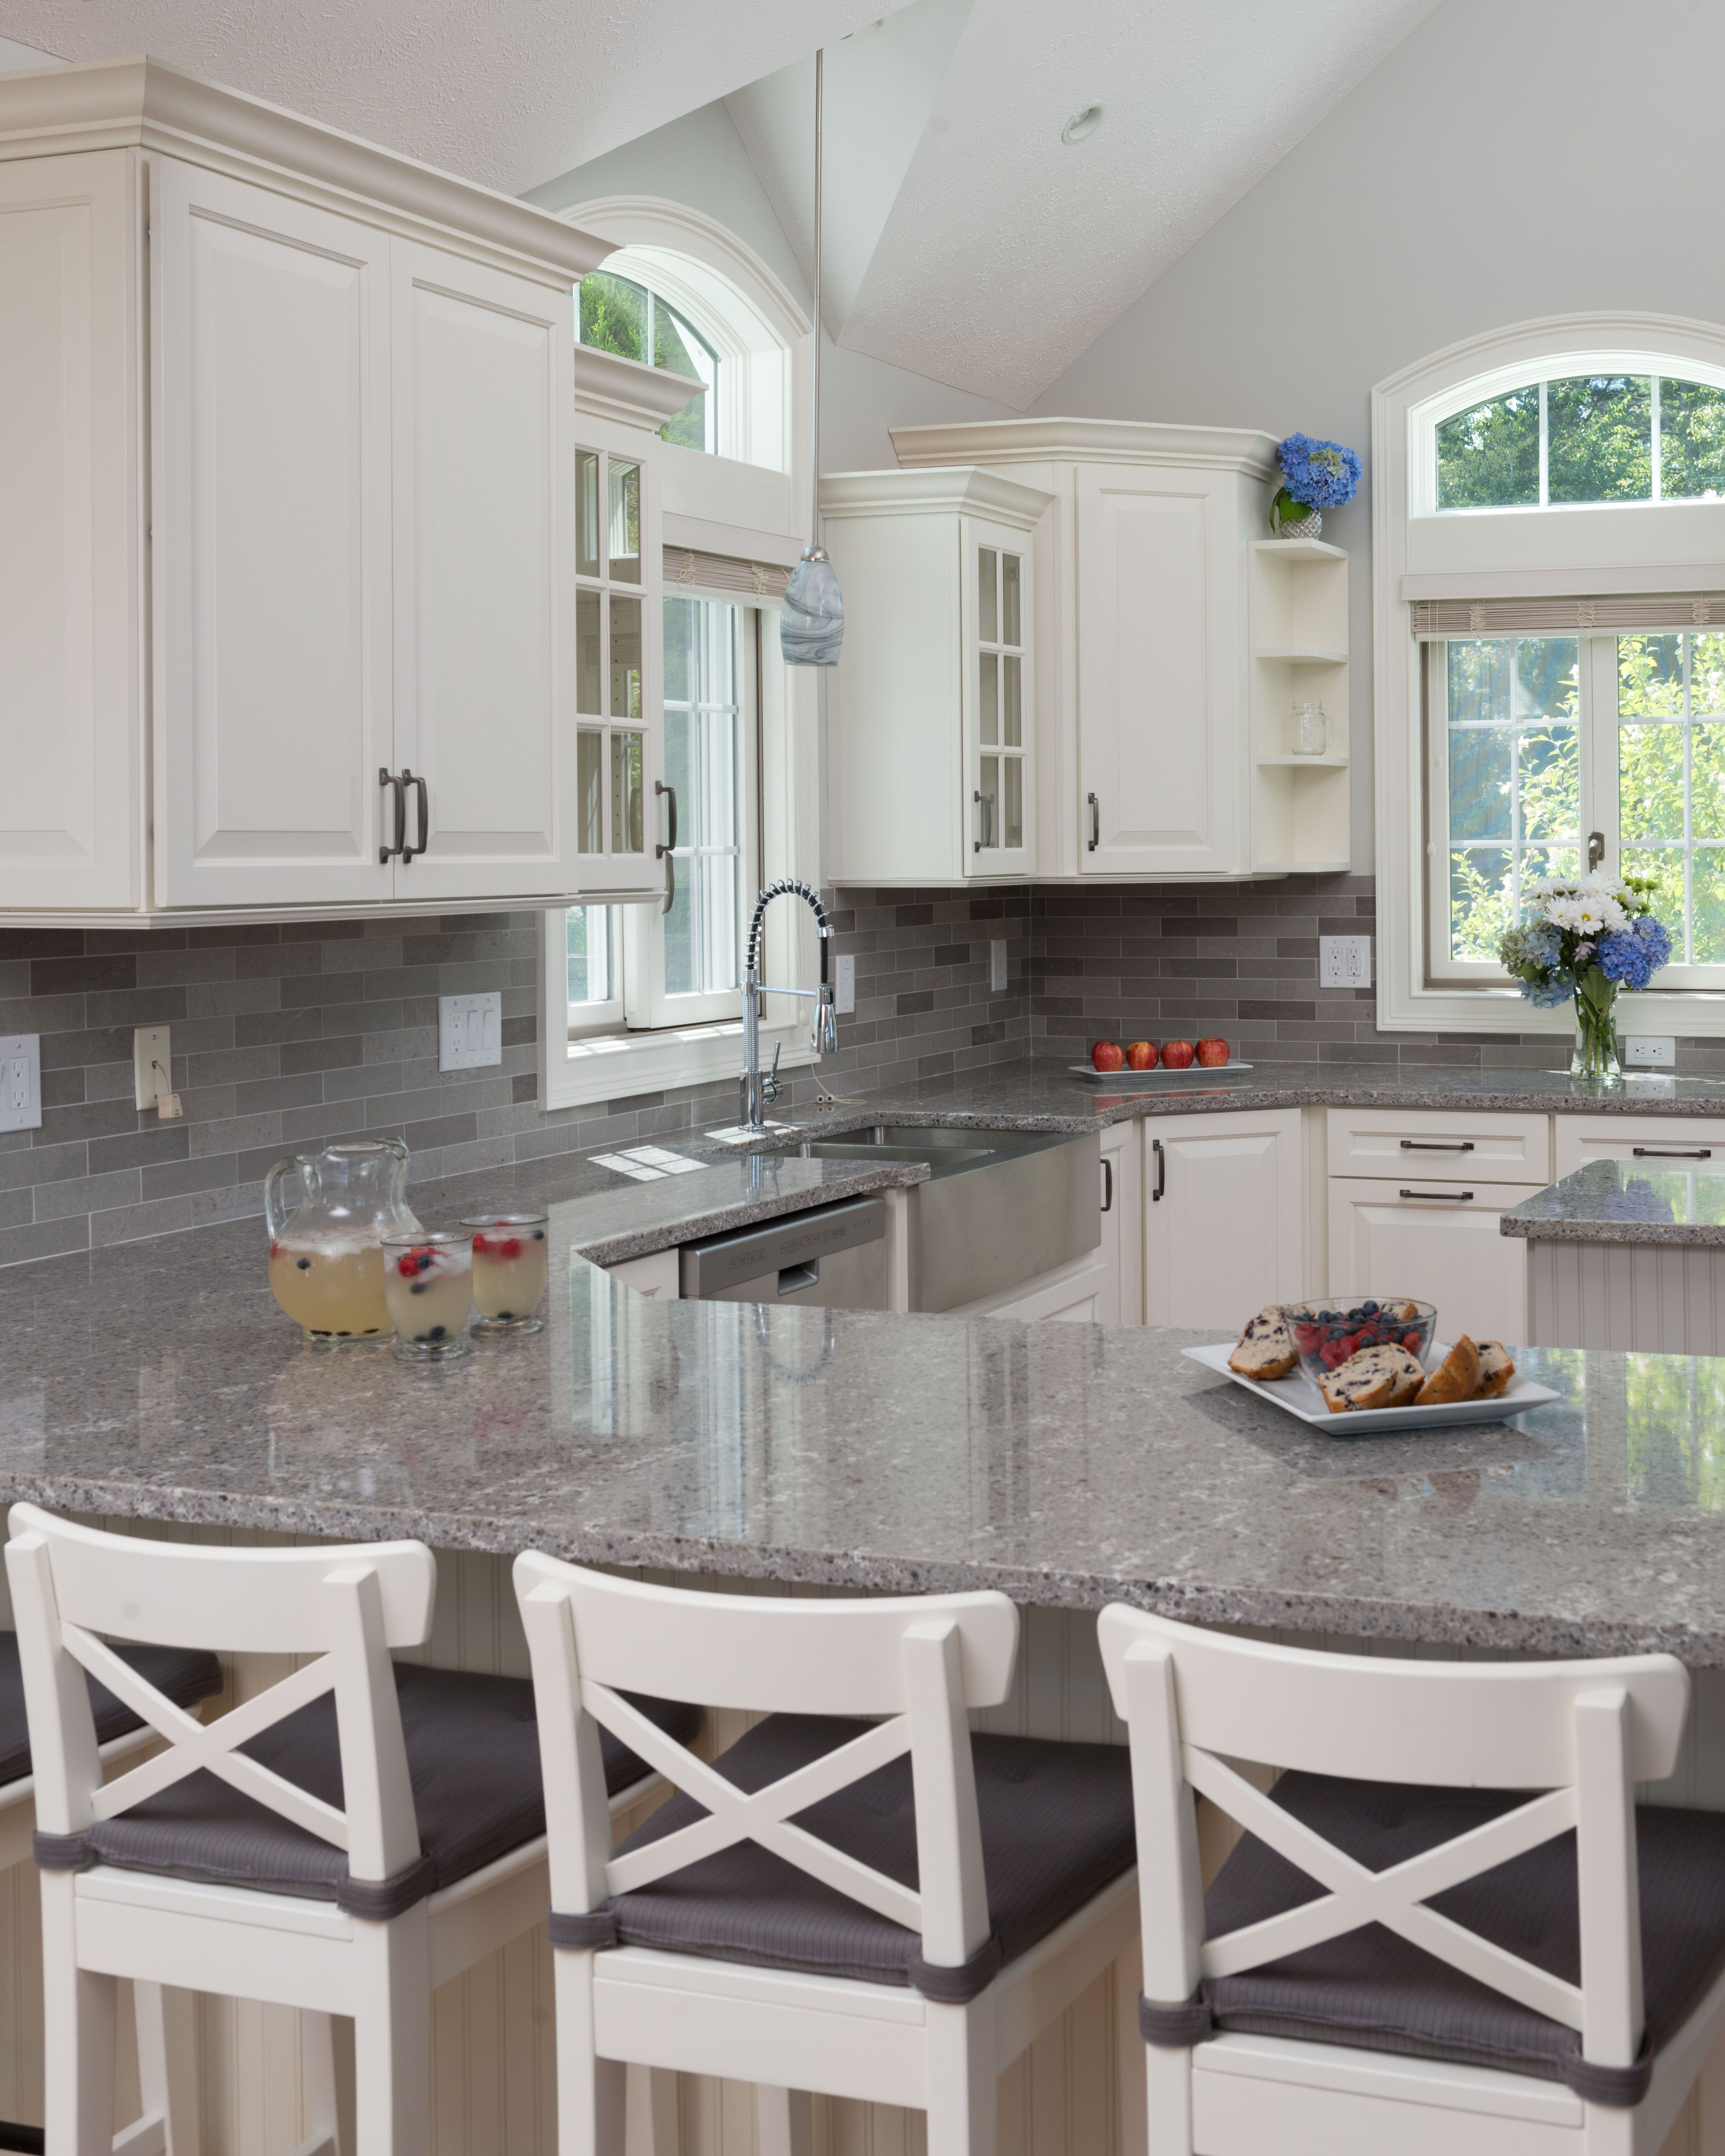 Kitchen In Rindge Nh Because We Knew This Kitchen Was Going To Be Heavily Used We Guided Our Clients Toward Cambria Quar Kitchen Remodel Countertops Kitchen